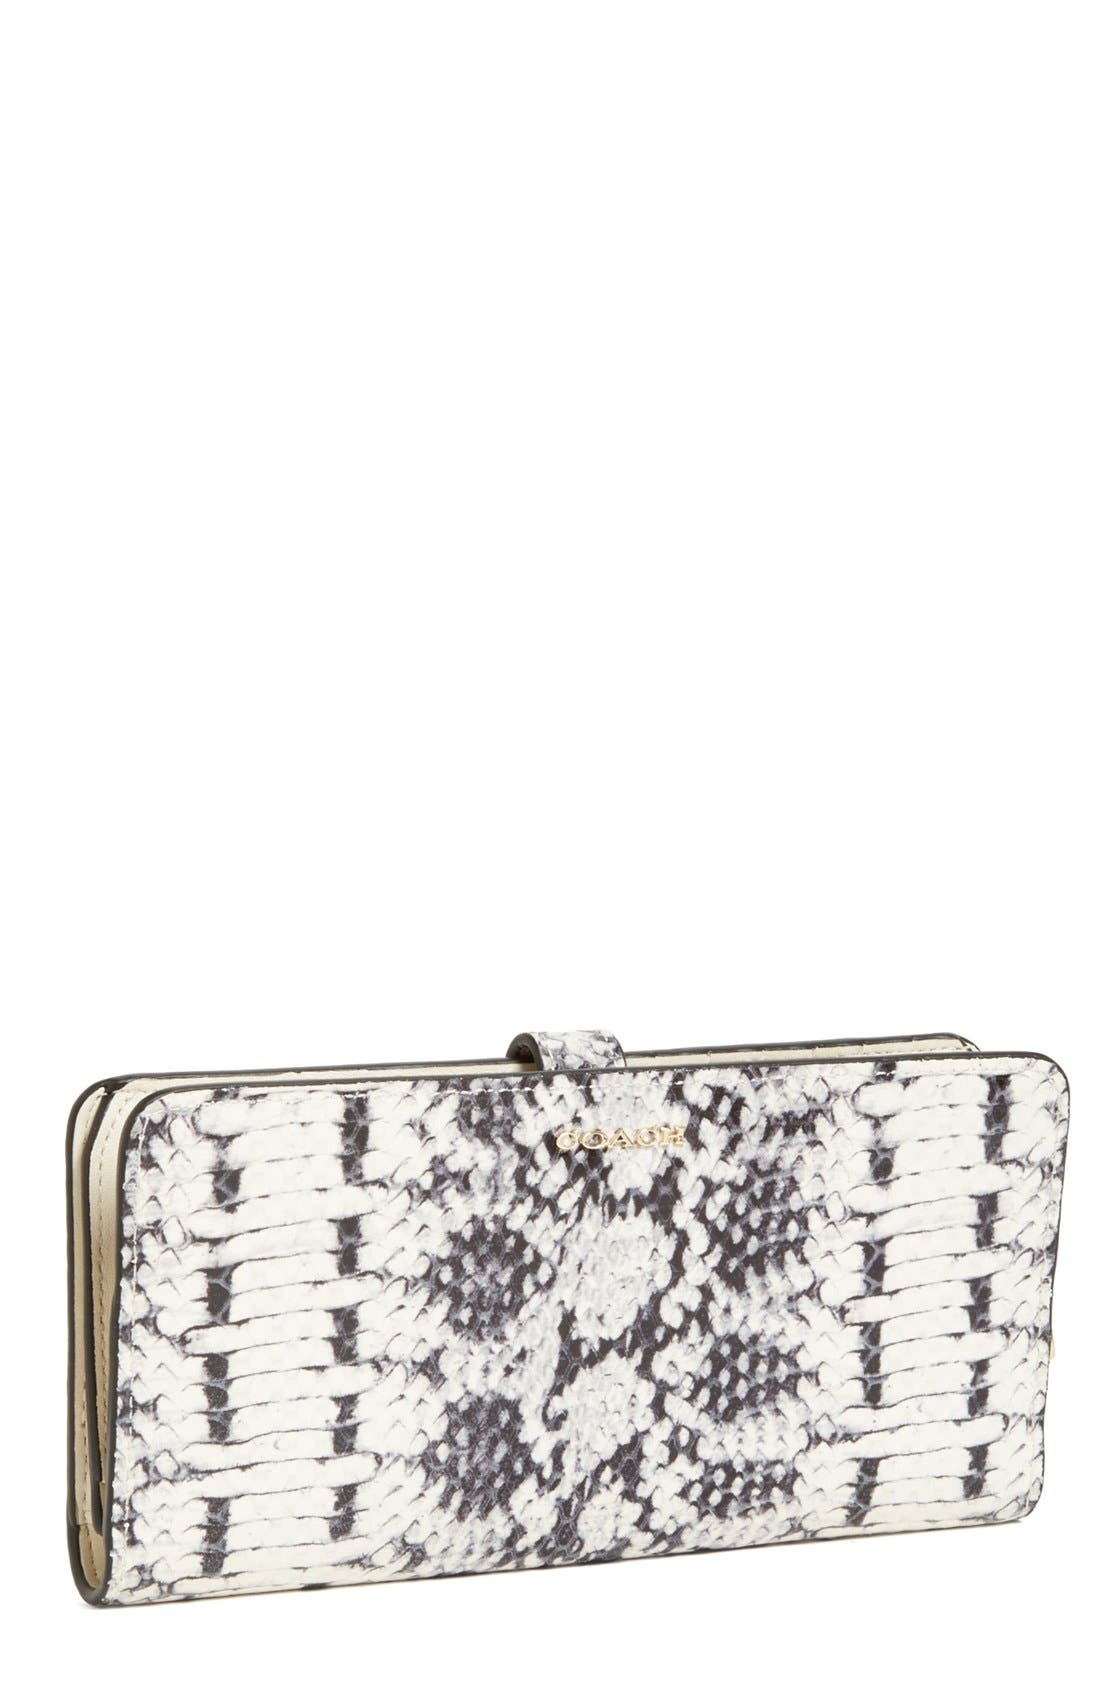 Alternate Image 1 Selected - COACH 'Madison' Python Embossed Leather Wallet